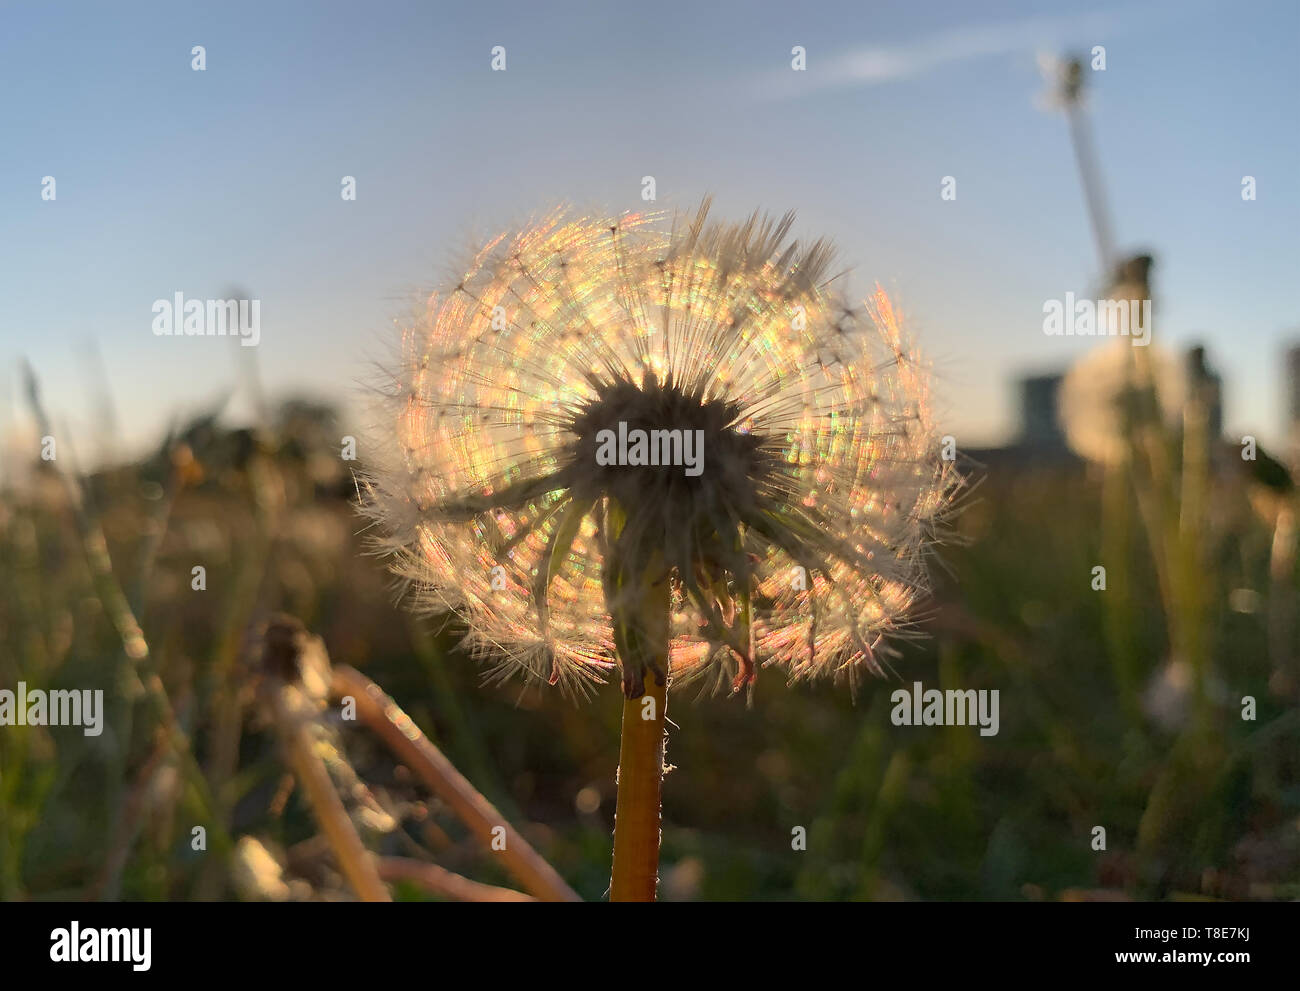 Berlin, Germany. 12th May, 2019. In the light of the setting sun a dandelion shines in the government quarter. Credit: Paul Zinken/dpa/Alamy Live News - Stock Image